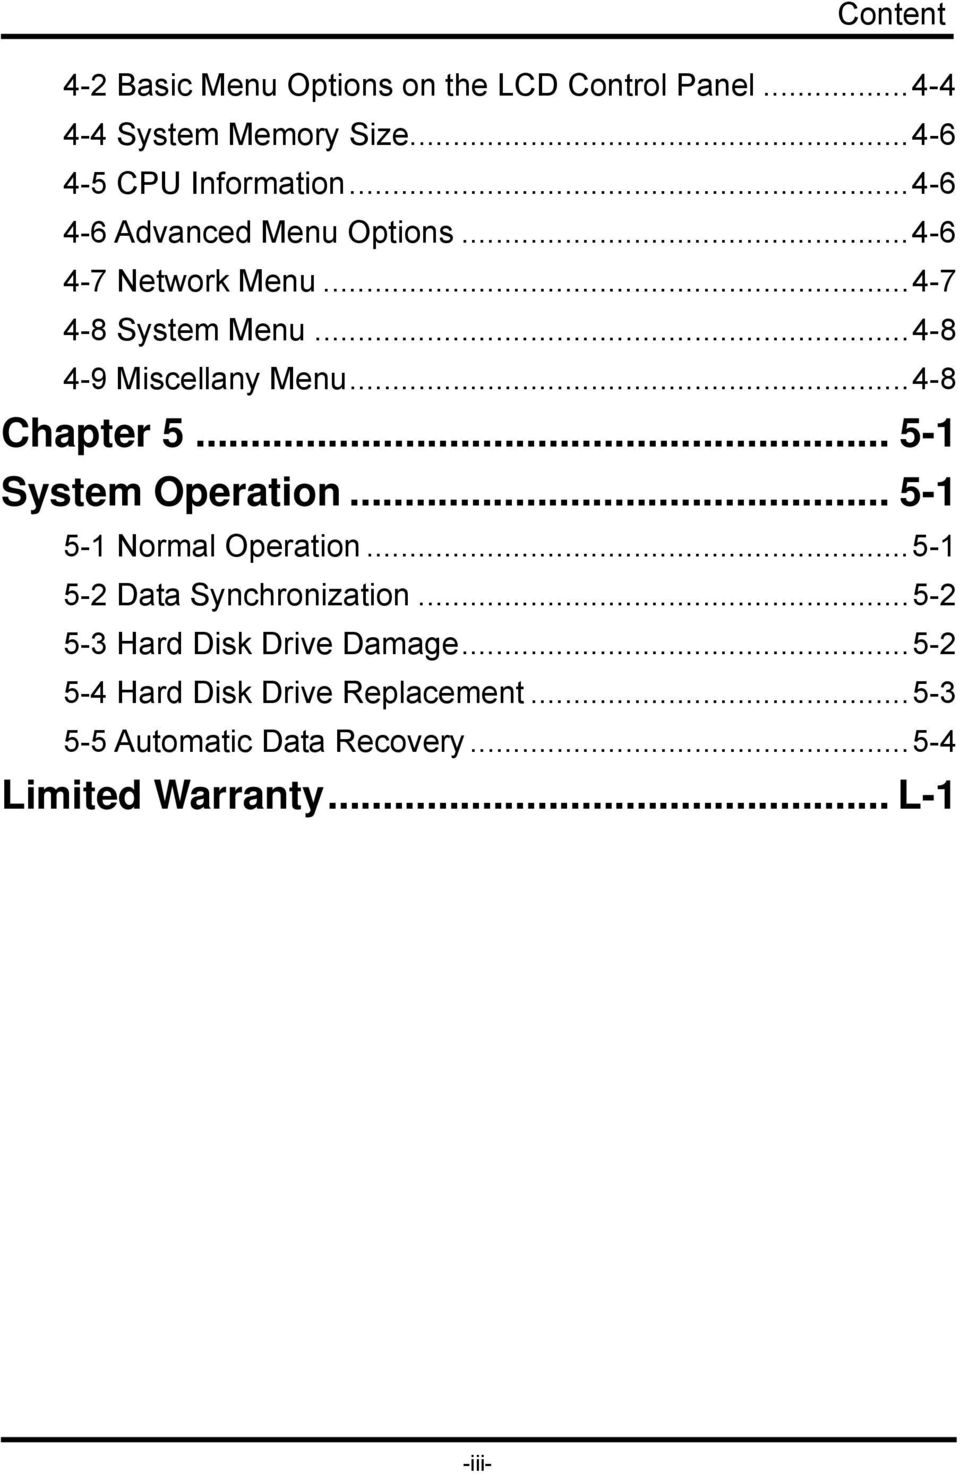 ..4-8 Chapter 5... 5-1 System Operation... 5-1 5-1 Normal Operation...5-1 5-2 Data Synchronization.